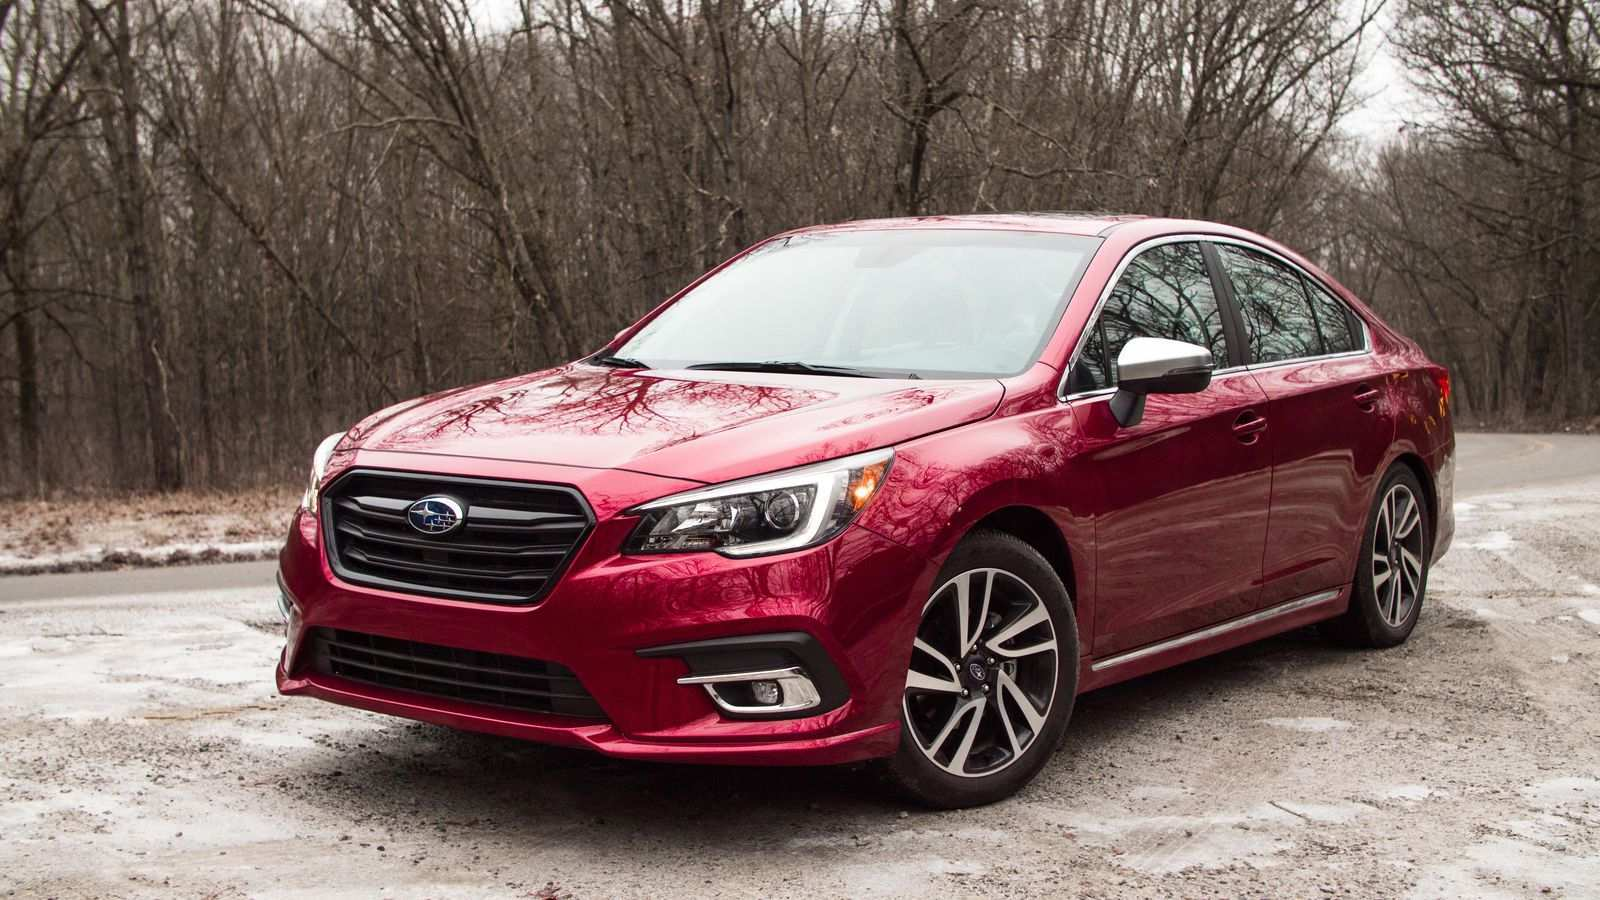 56 Best Review Best Subaru 2019 Legacy New Release Engine for Best Subaru 2019 Legacy New Release